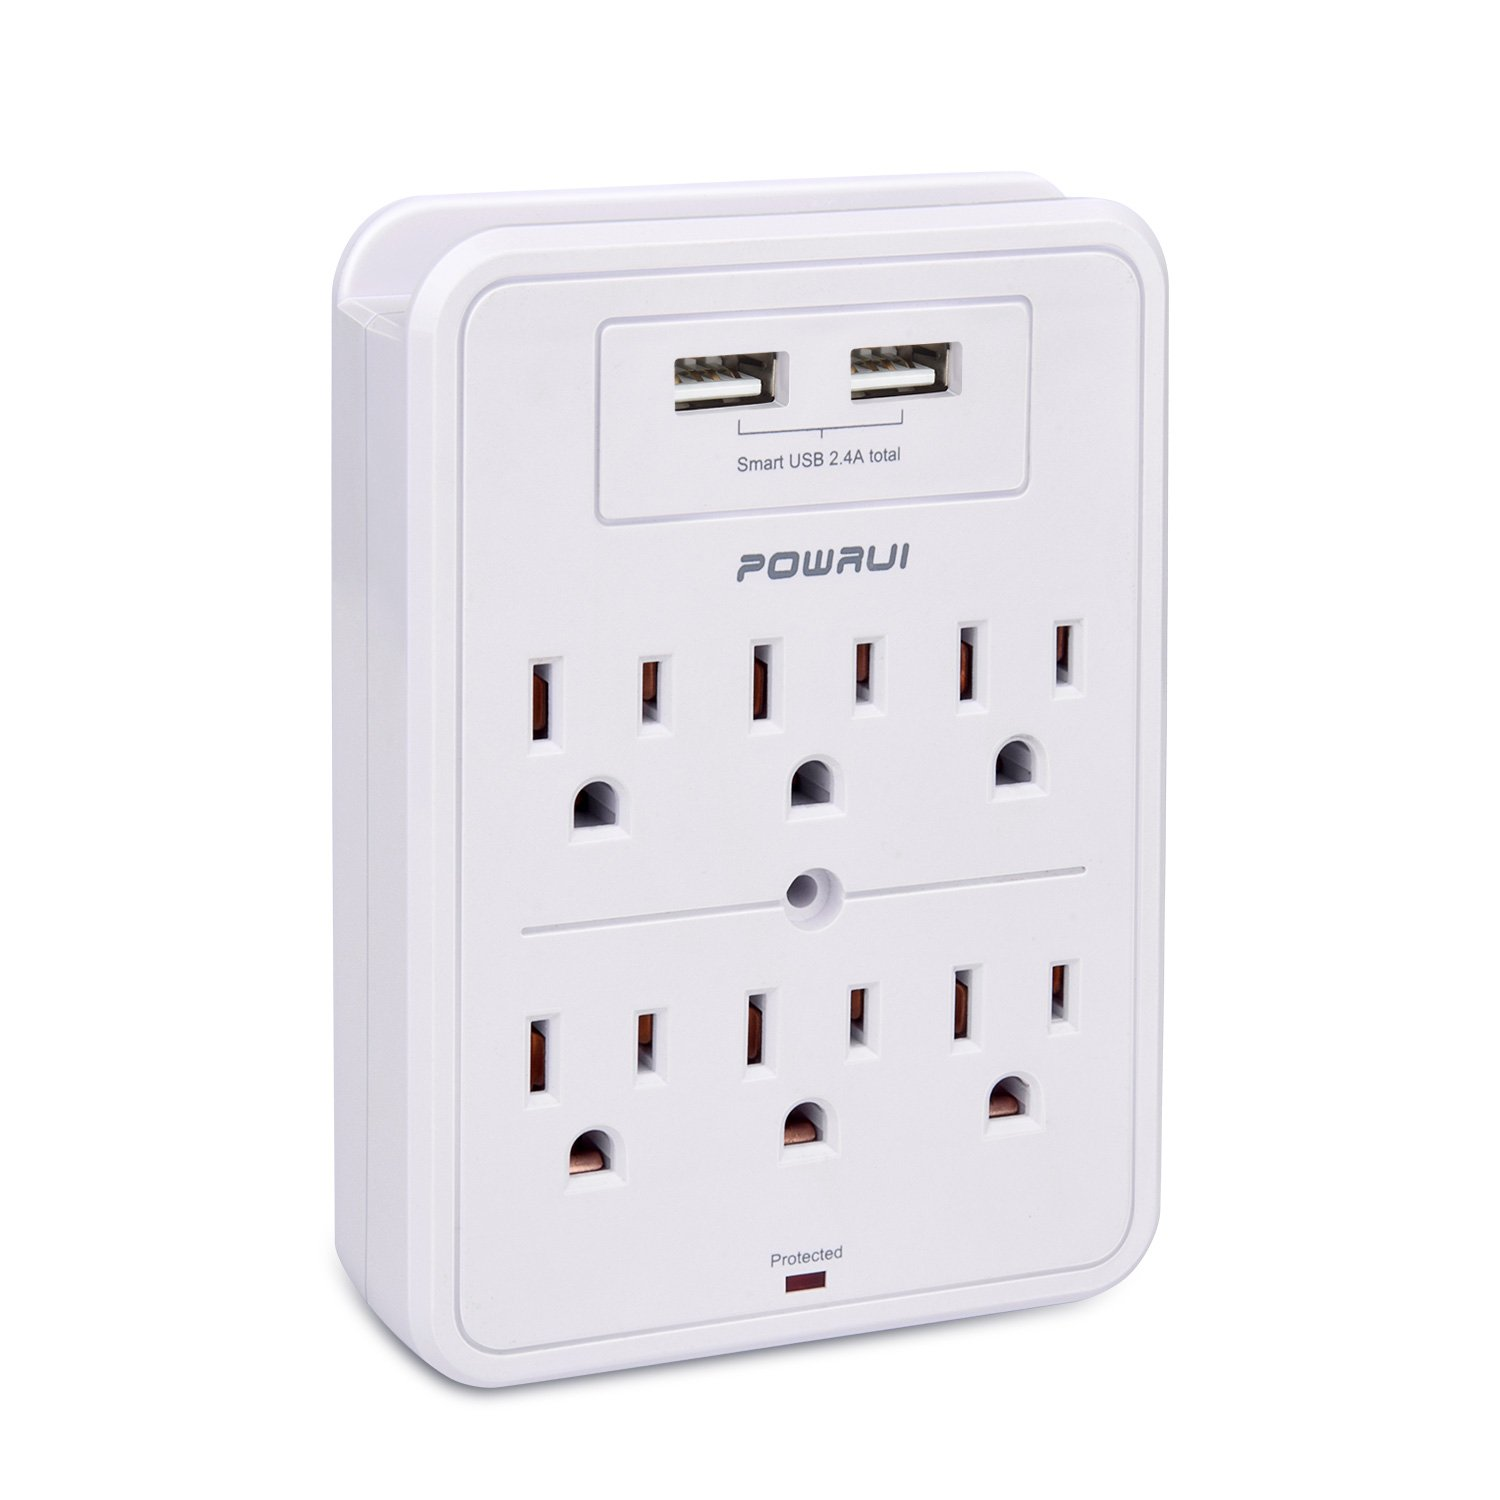 Surge Protector, POWRUI USB Wall Charger with 2 USB charging ports(smart 2.4A Total), 6-Outlet Extender and Top Phone Holder for Your Cell Phone, White, ETL Certified by POWRUI